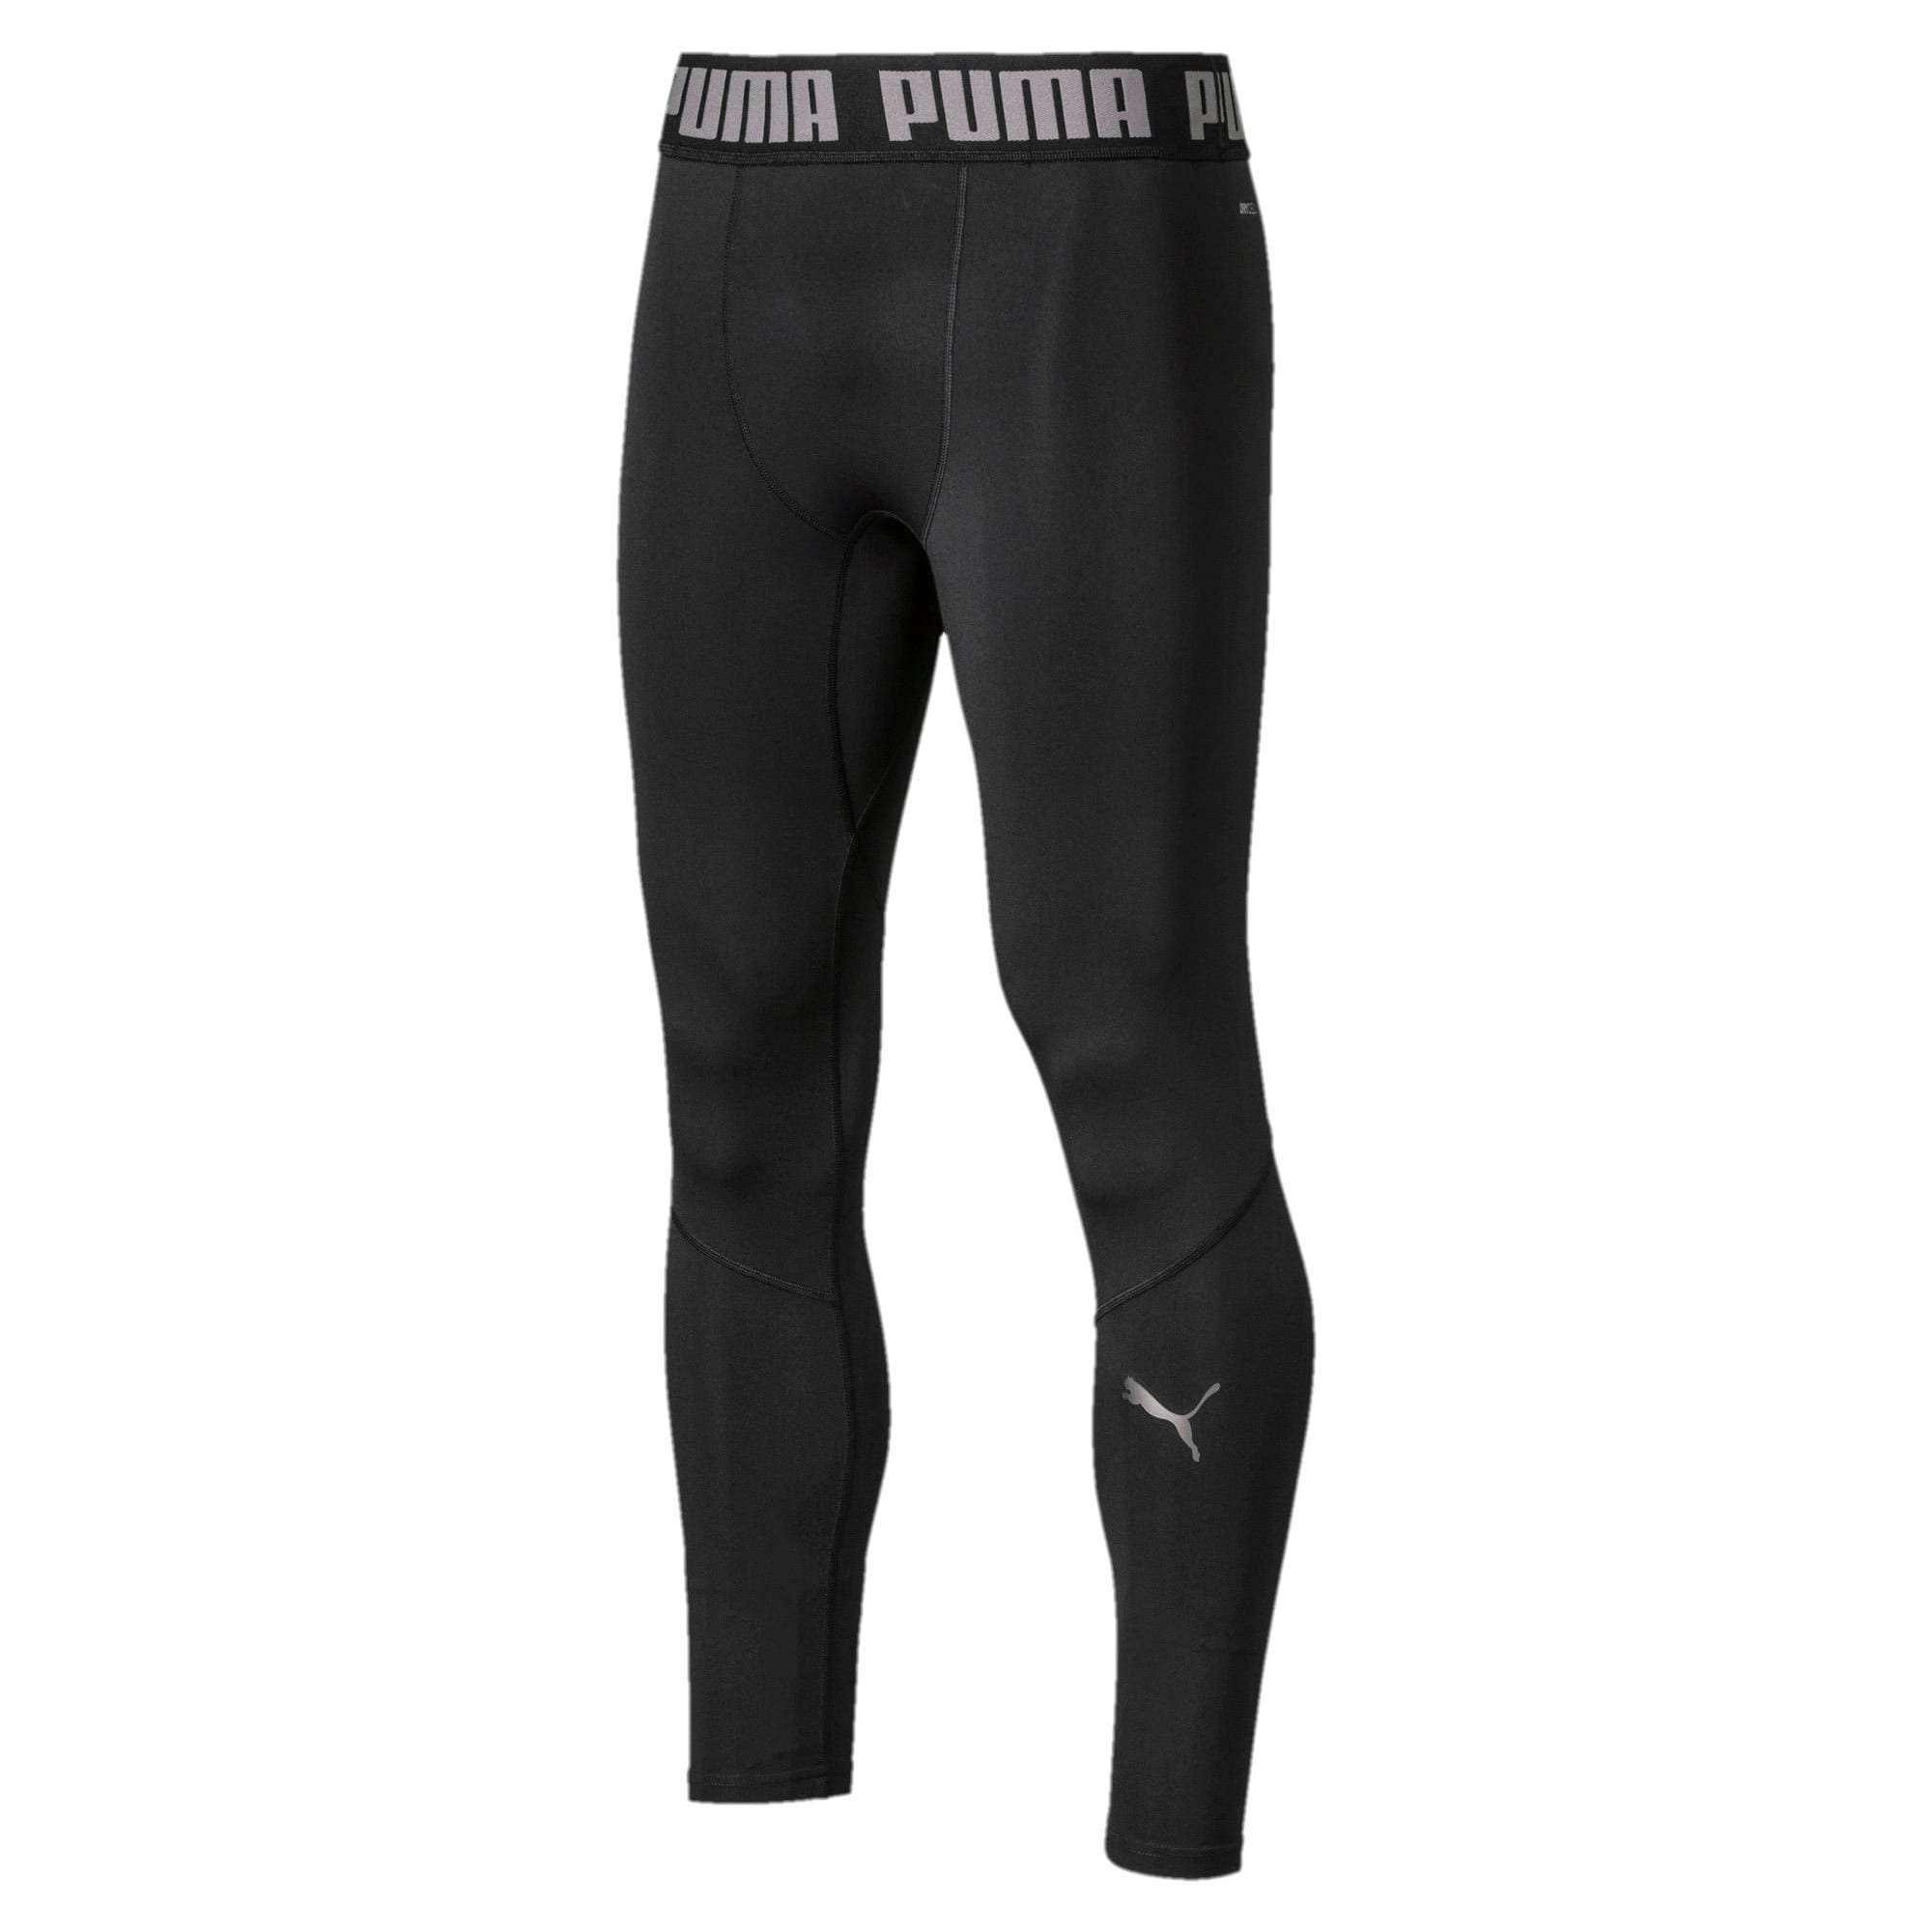 Thumbnail 4 of BND 7/8 Men's Training Tights, Puma Black, medium